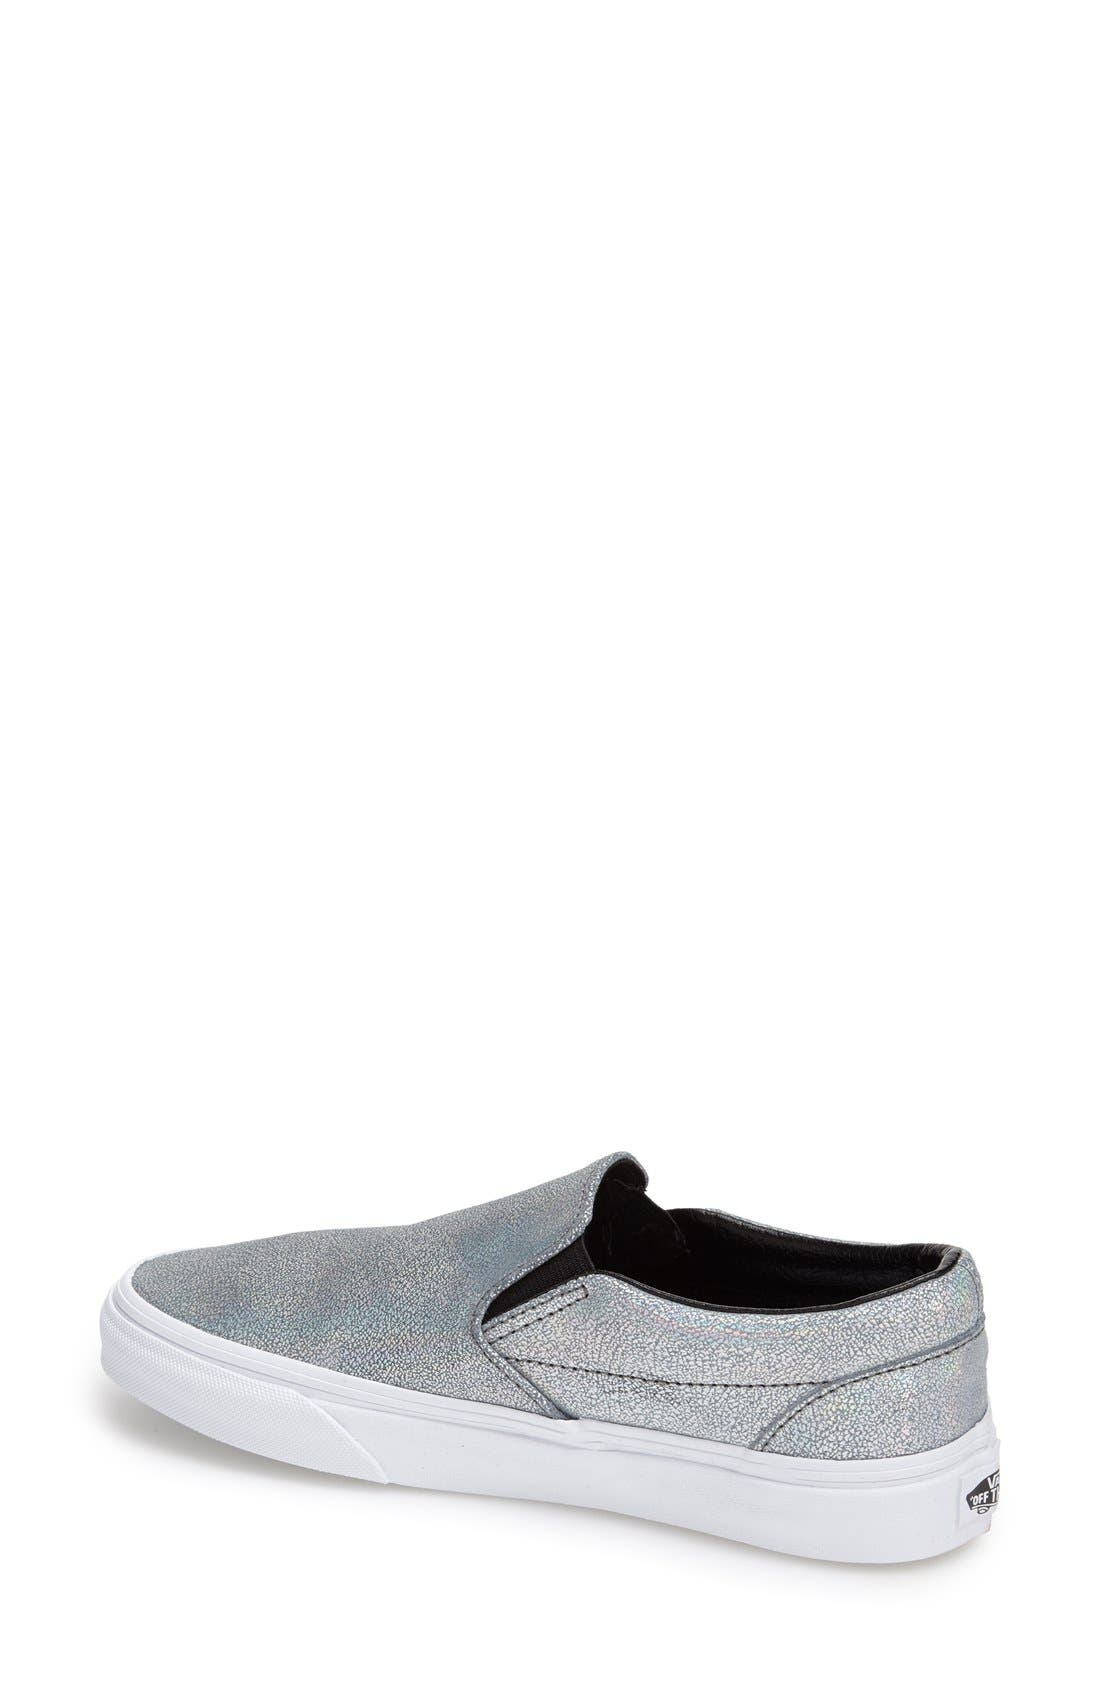 Alternate Image 2  - Vans 'Classic - Iridescent' Slip-On Sneaker (Women)